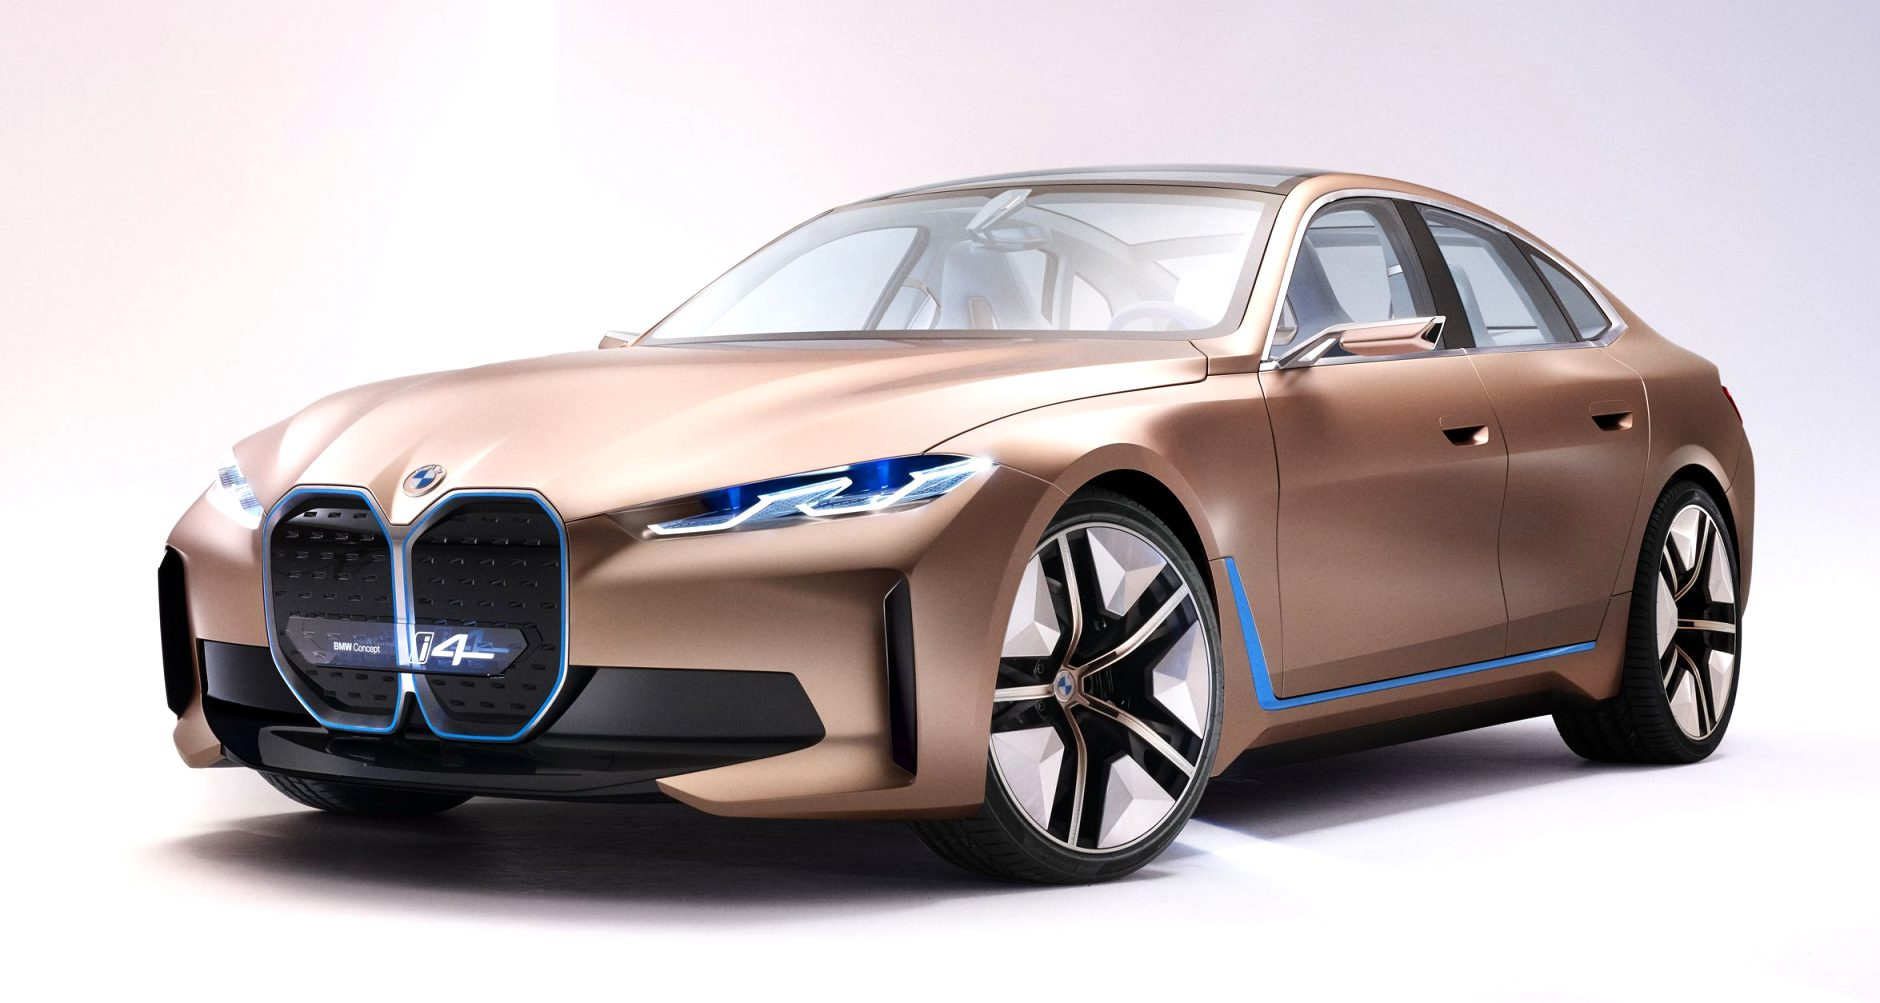 BMW diesel 2021 Release Date and Concept